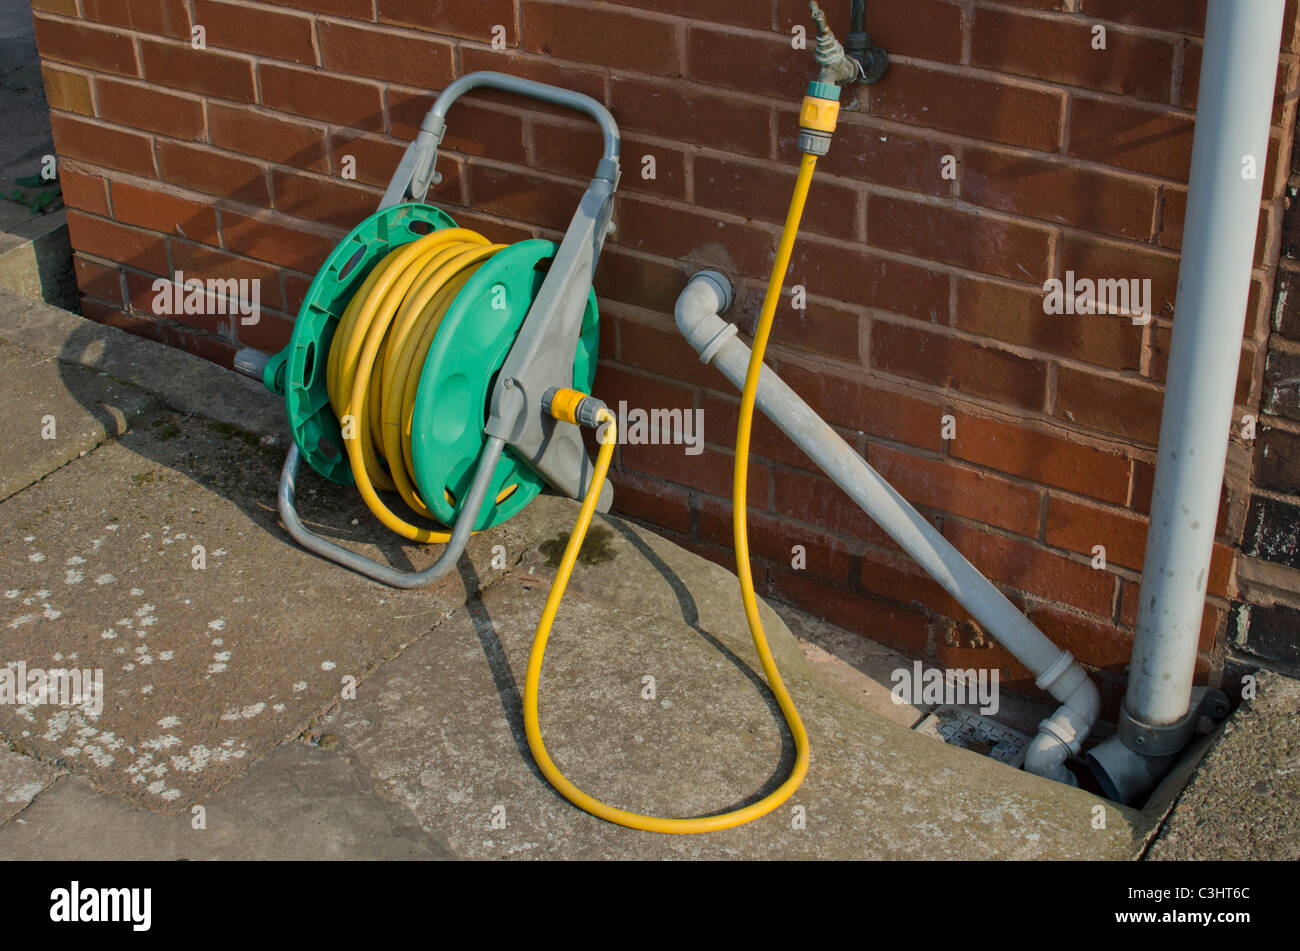 Coiled Yellow Water Hose Stock Photos & Coiled Yellow Water Hose ...